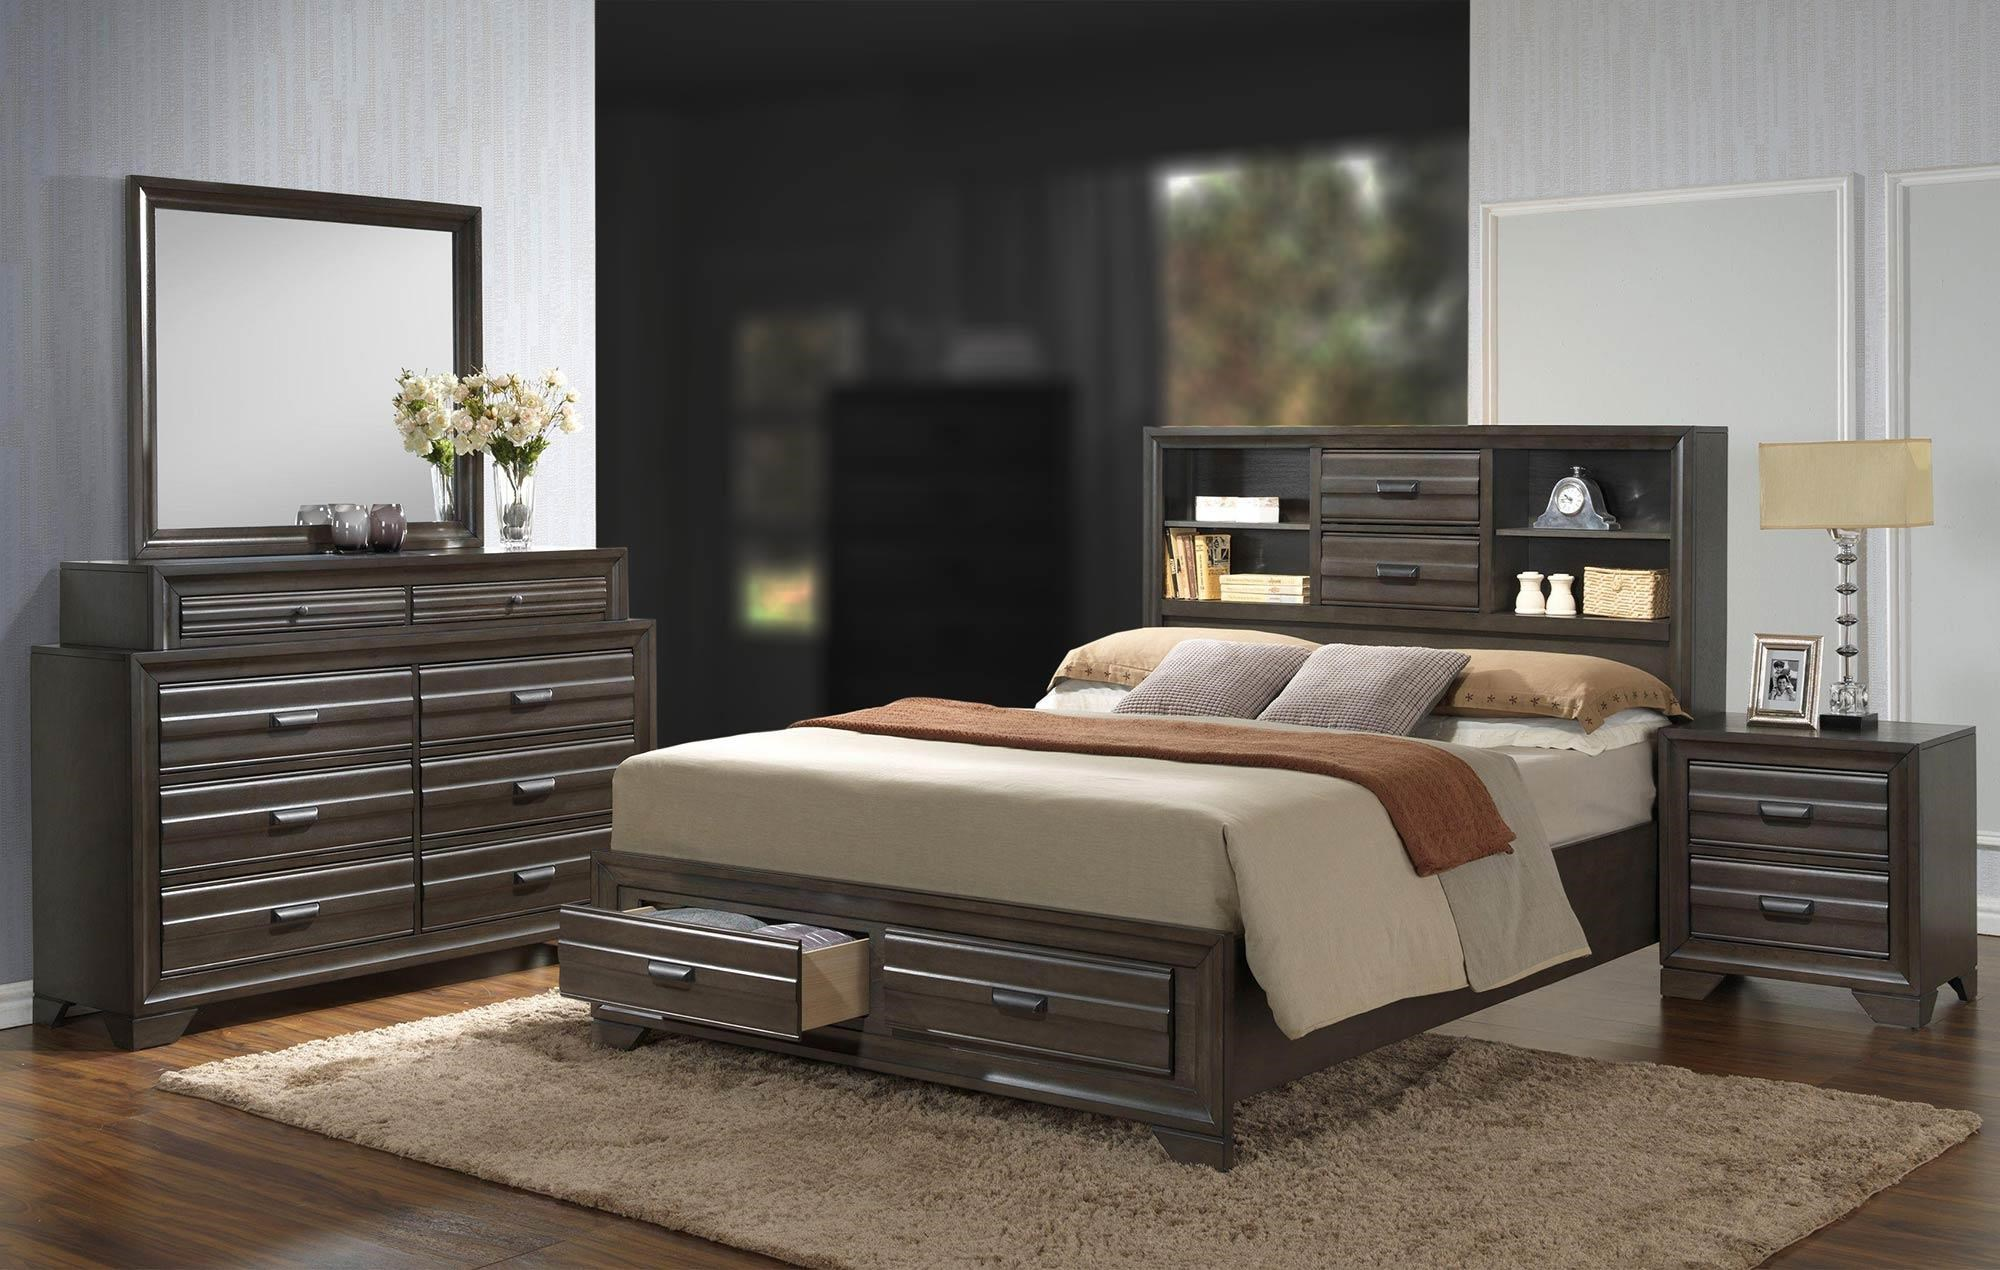 Lifestyle Slater 4PC Queen Bedroom Set   Item Number  5236A 4PC QSBR. Slater 4PC Queen Storage Bedroom Set   Rotmans   Bedroom Group